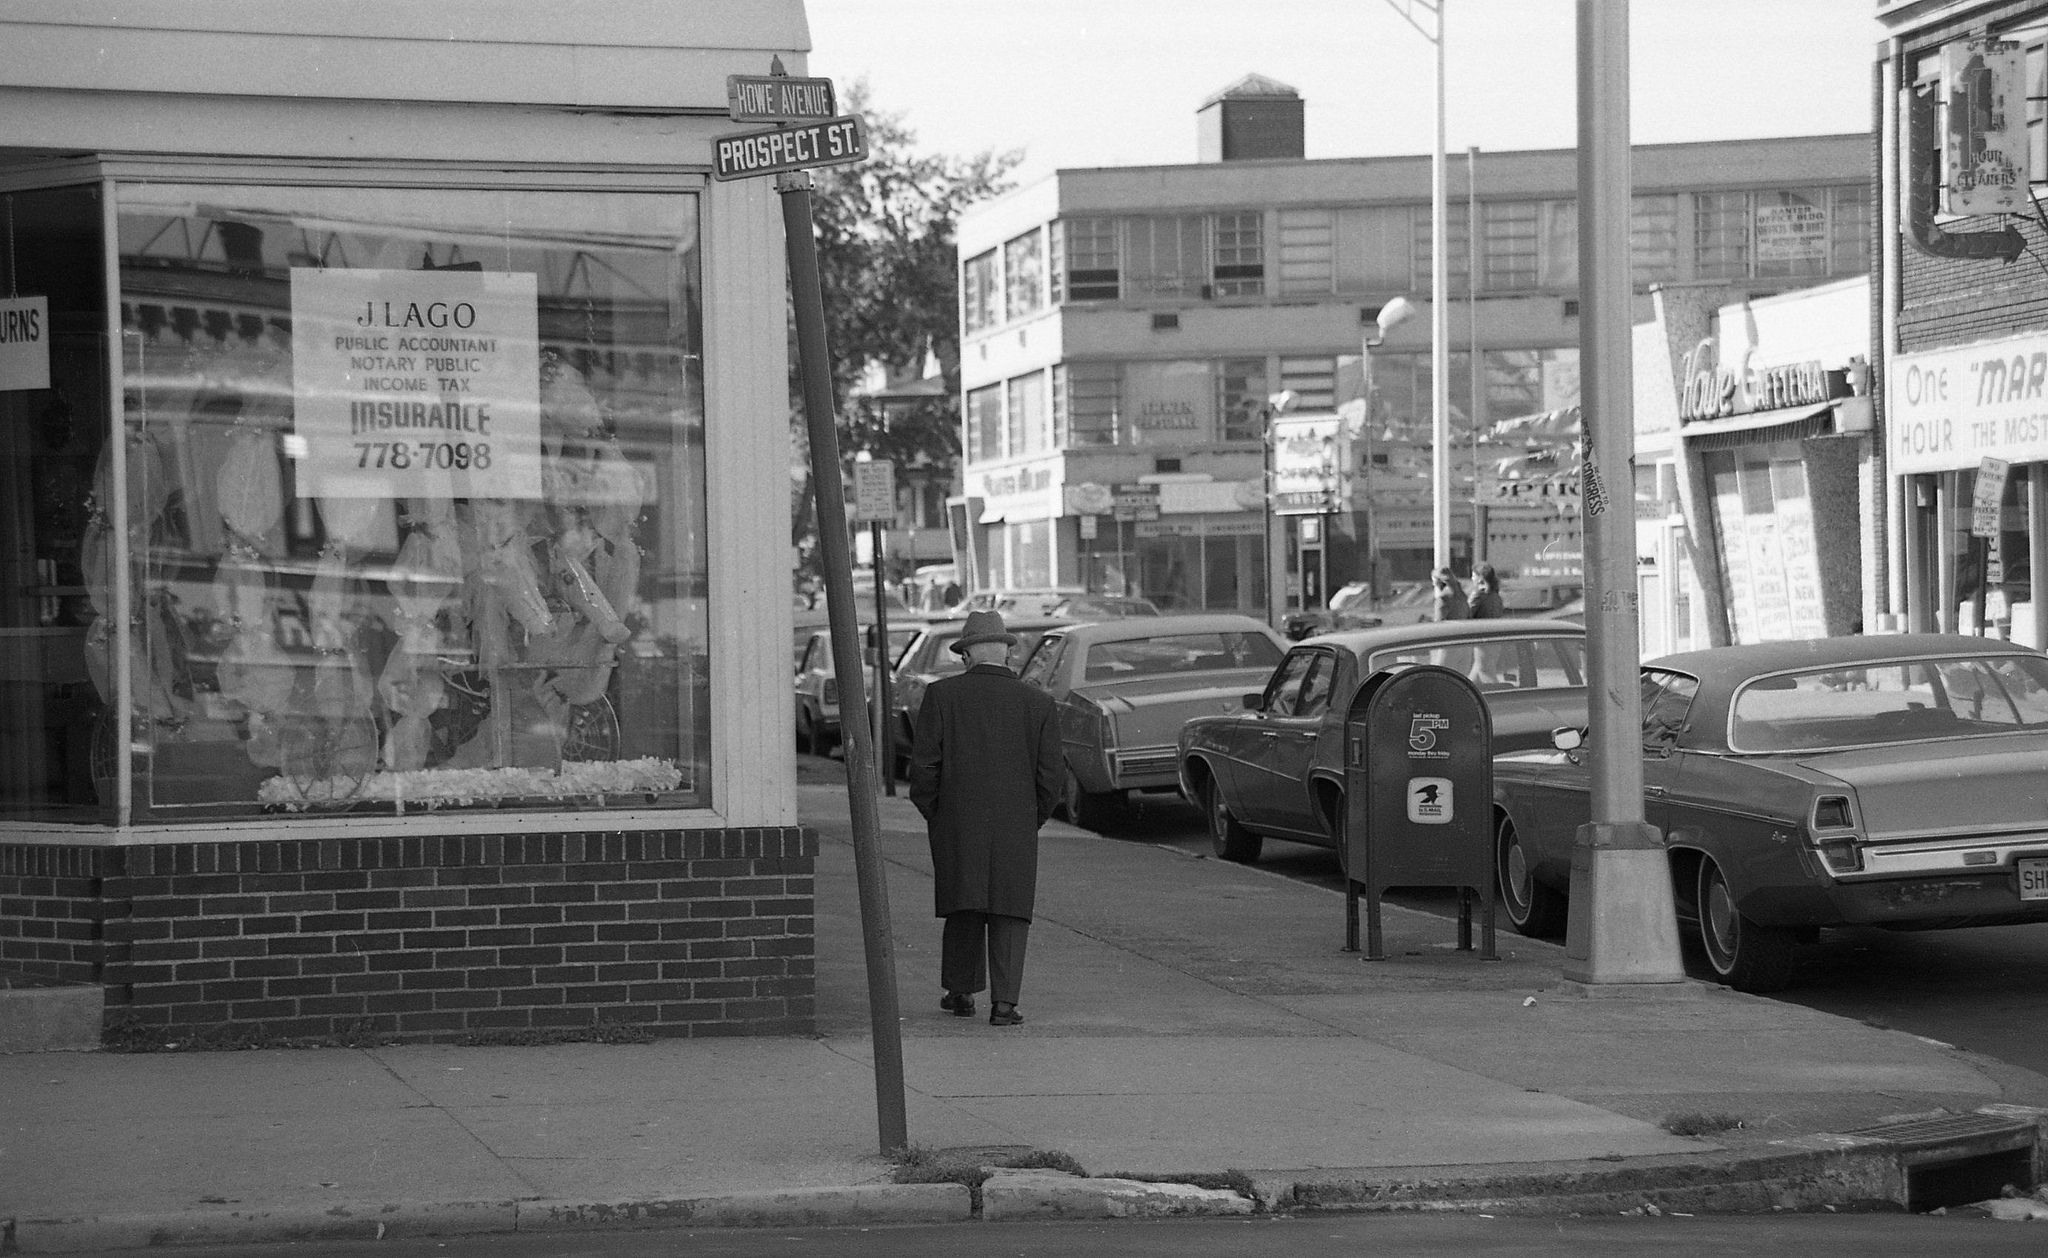 Howe Ave City Line Bus Stop To The Right Street Scenes